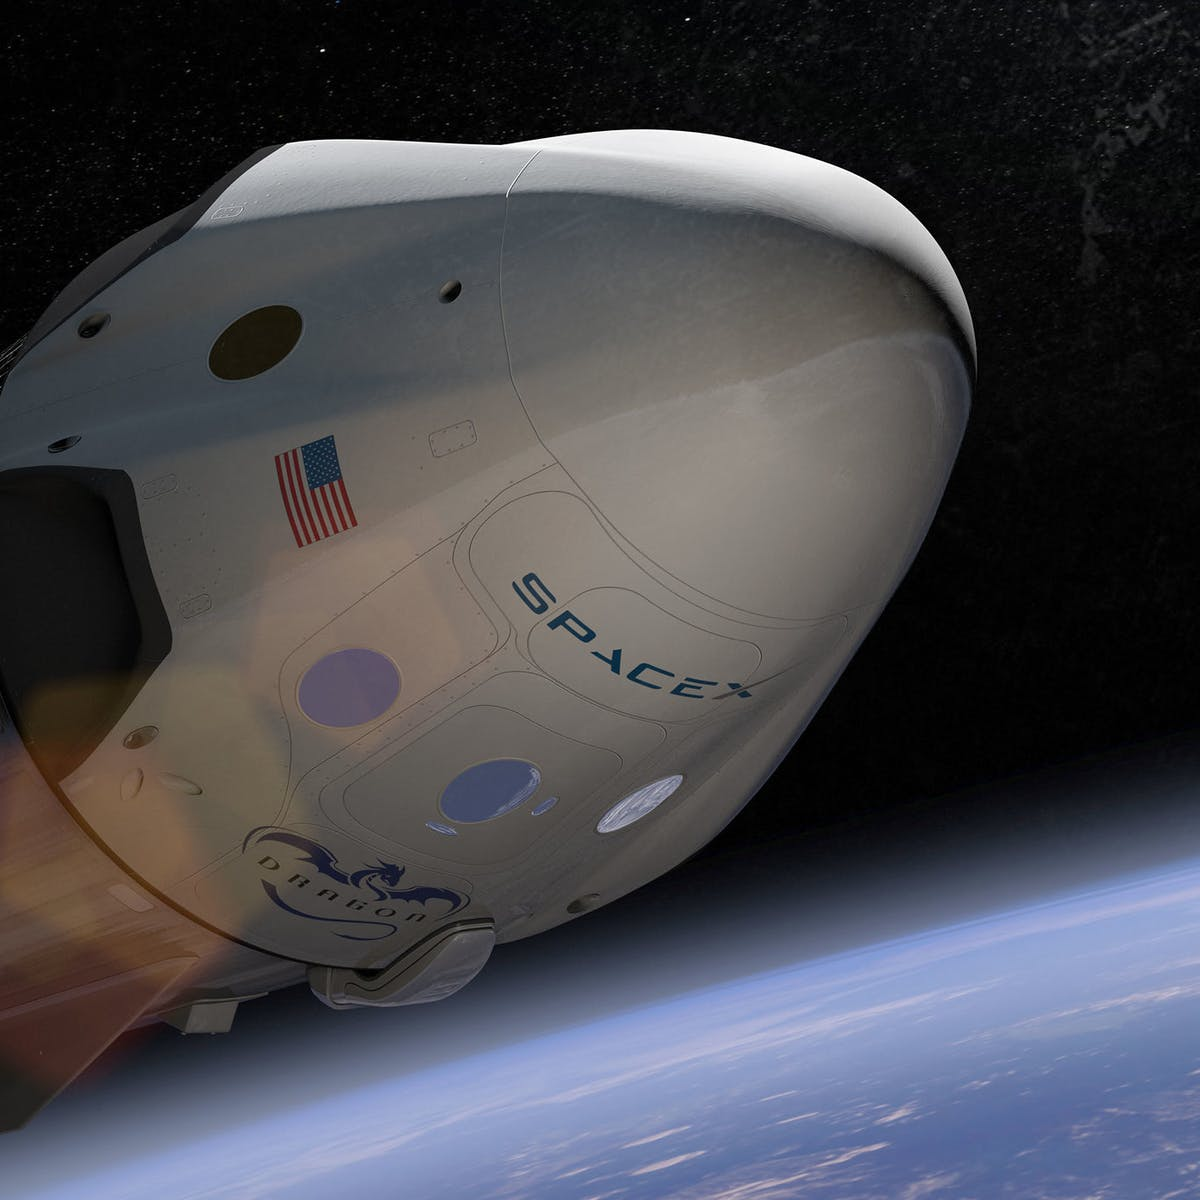 Crew Dragon: SpaceX Shows Intense Tests Ahead of First Manned Mission